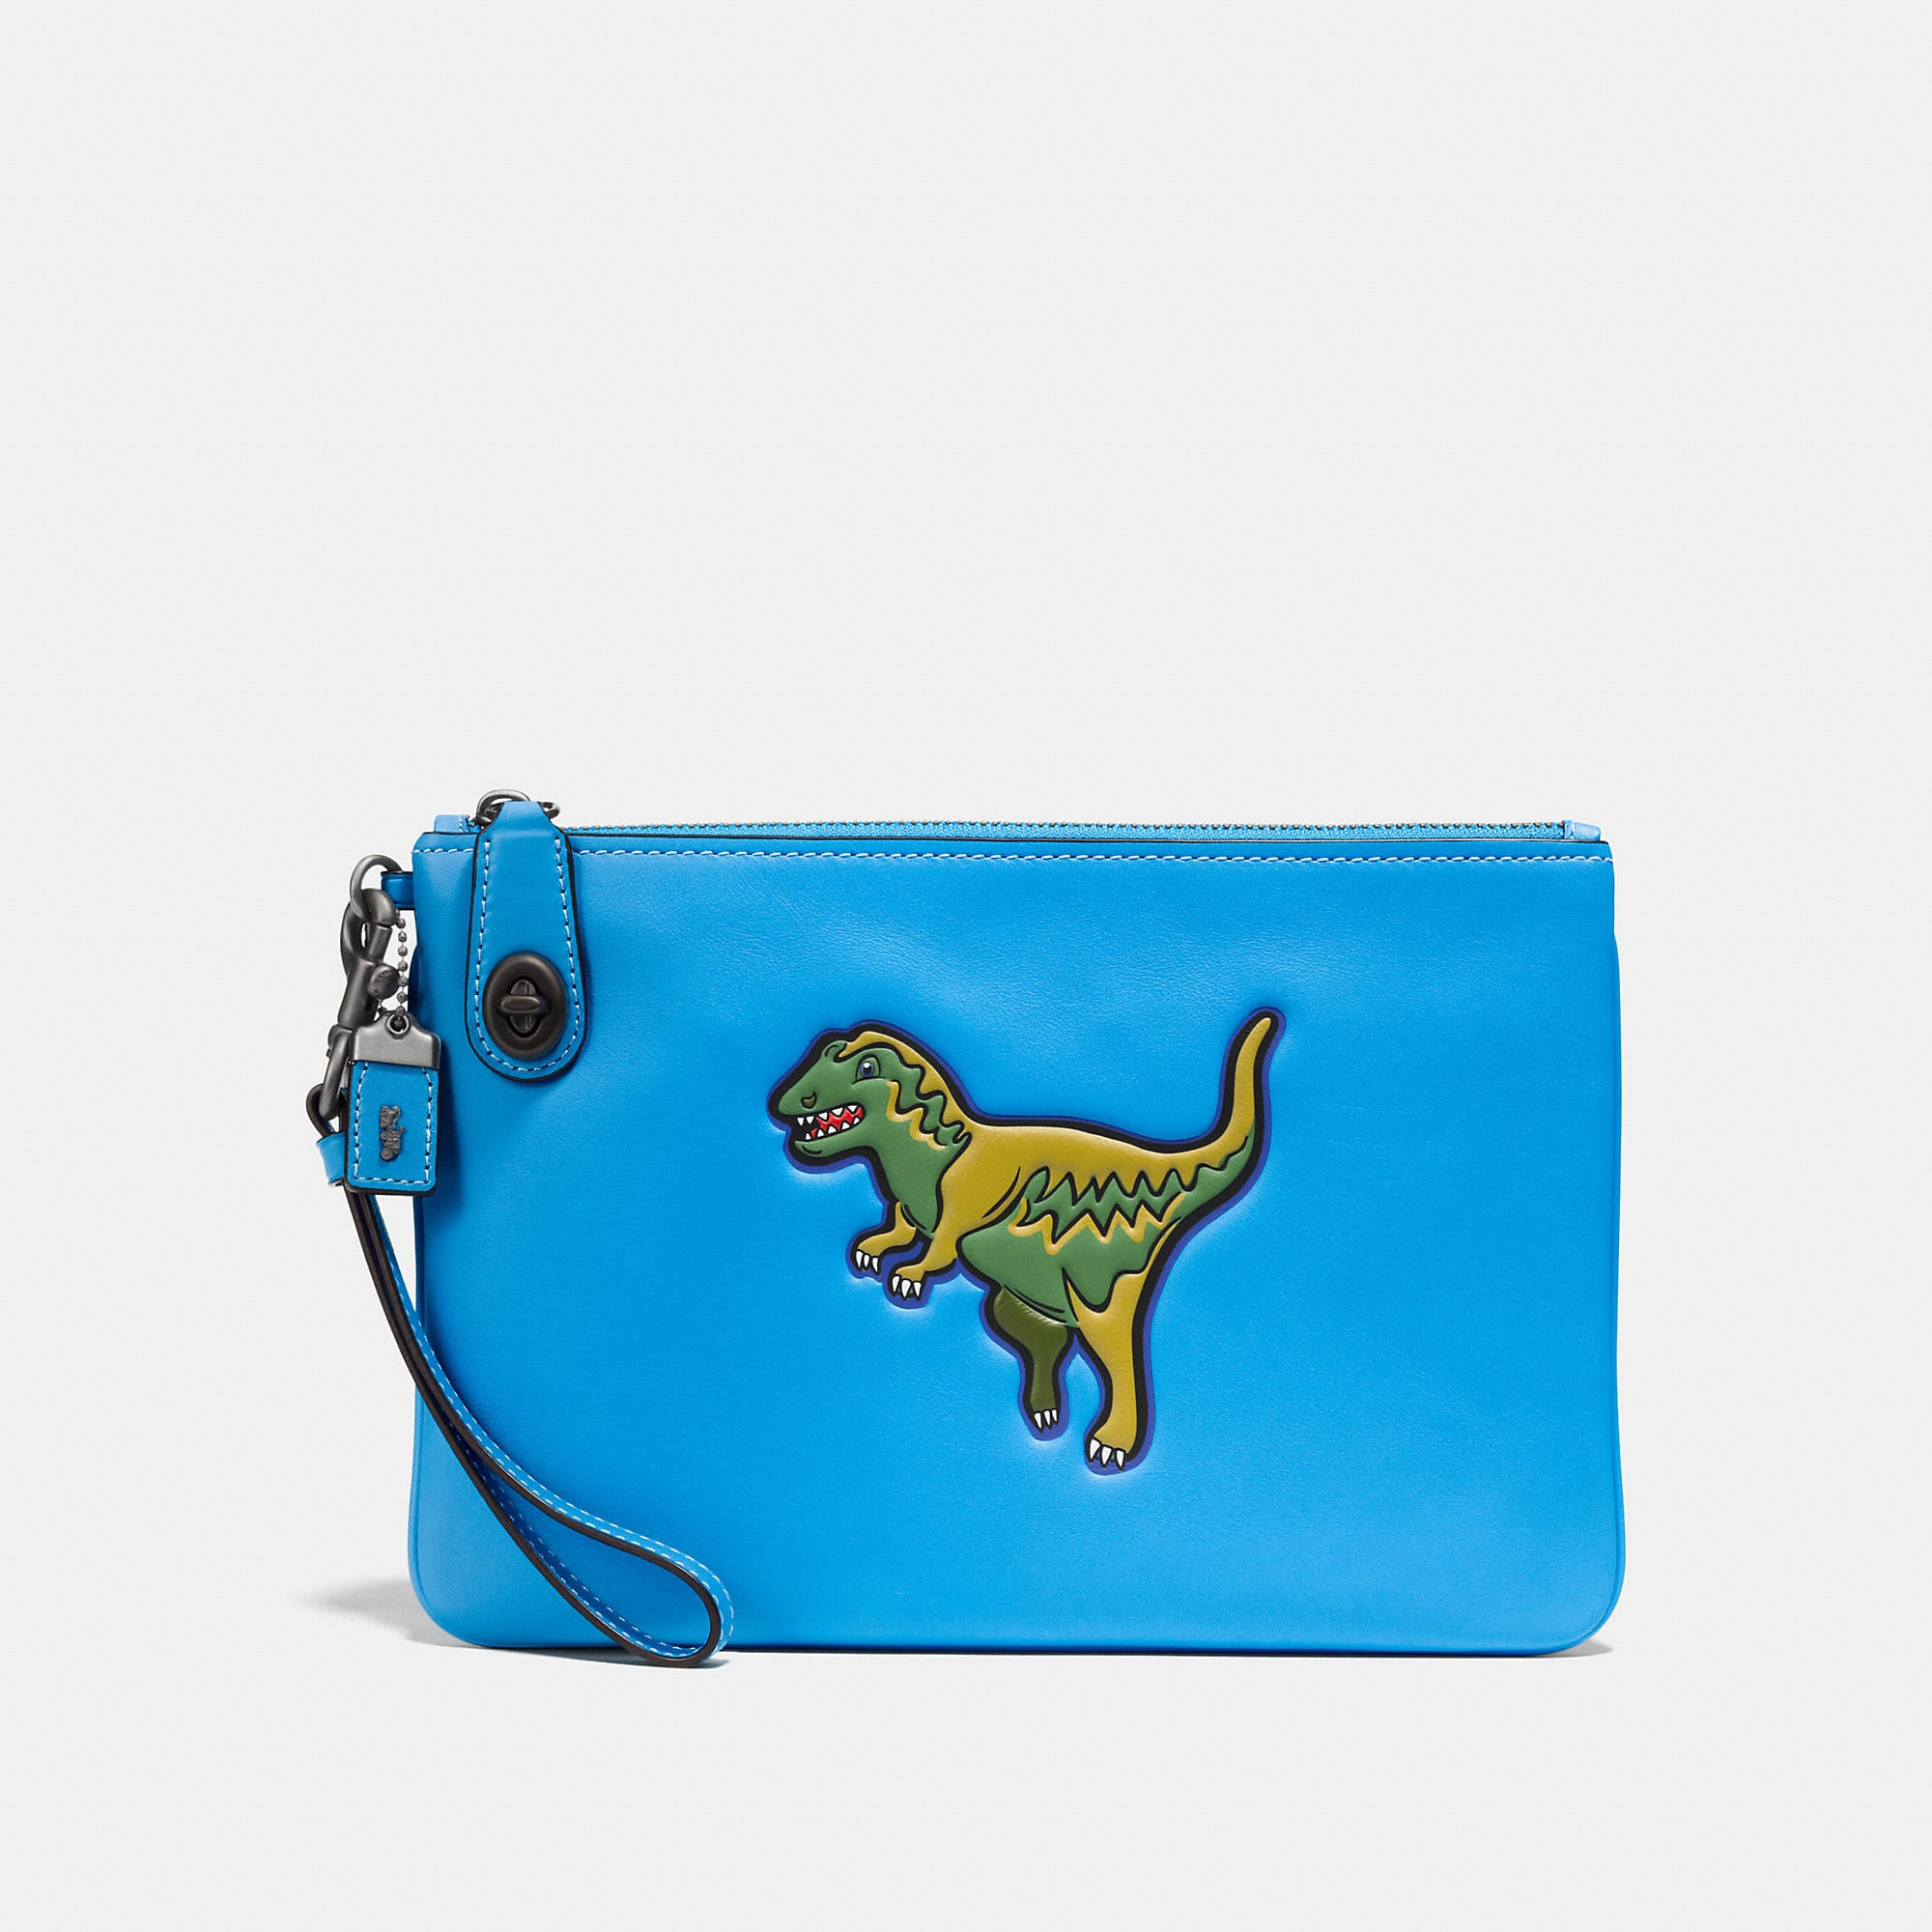 Coach Dinosaur Wristlet 26 In Glovetanned Leather